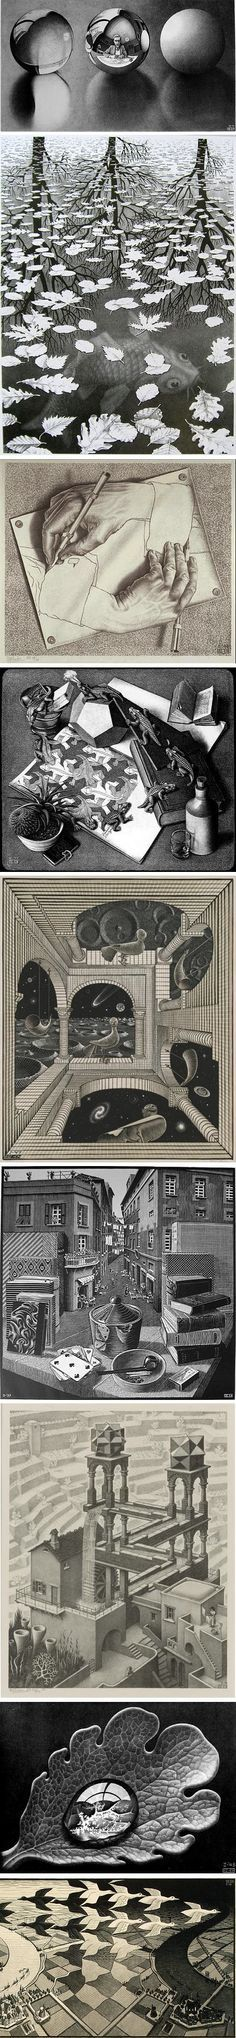 m-c-escher✖️More Pins Like This One At FOSTERGINGER @ Pinterest✖️